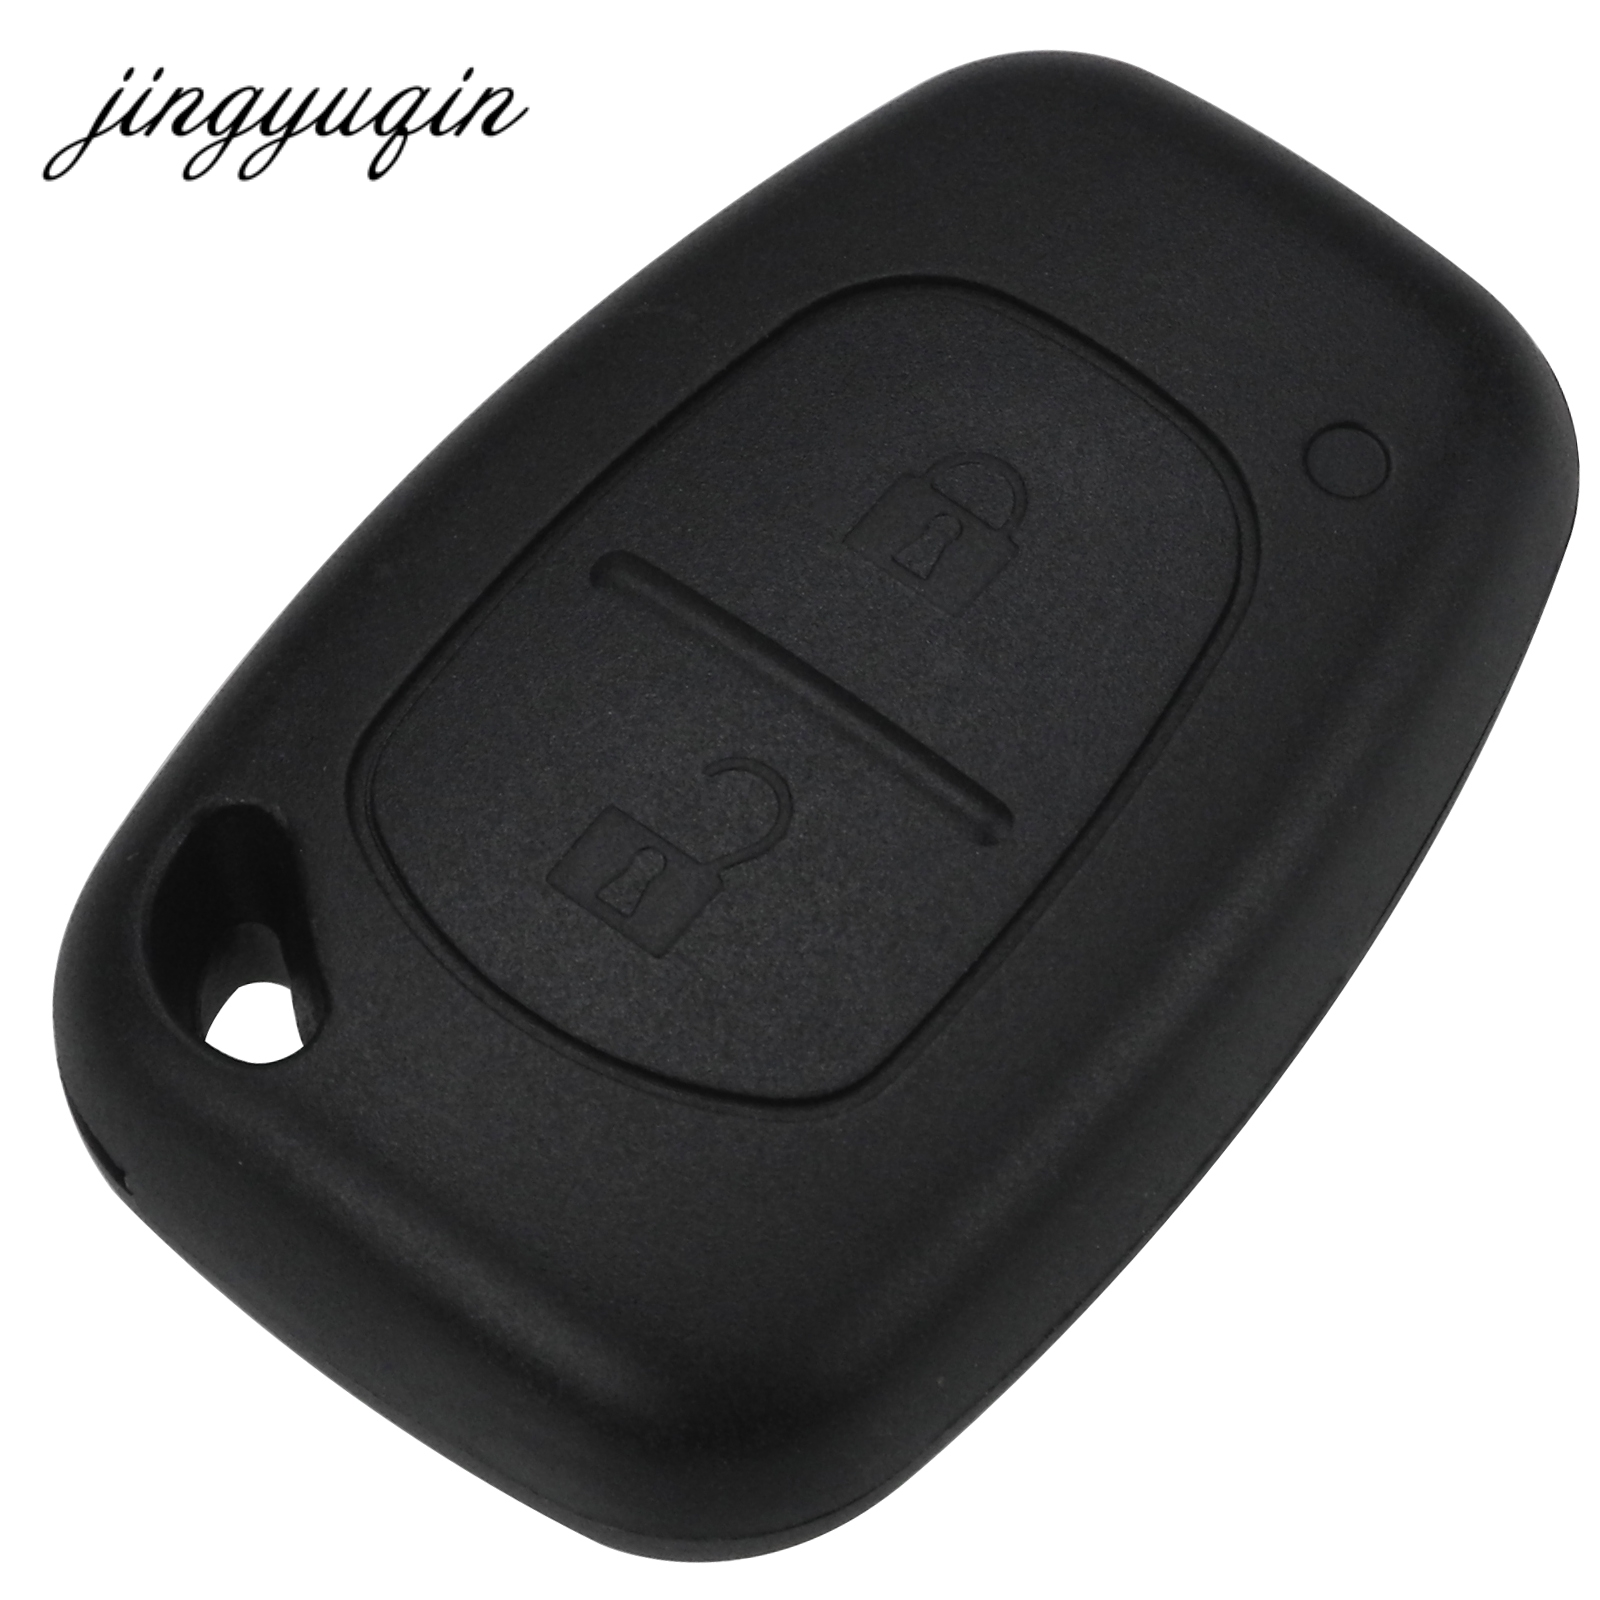 jingyuqin 50pcs lot 2 Button Remote Key Shell For Renault Opel Vauxhall for Nissan Vivaro Traffic